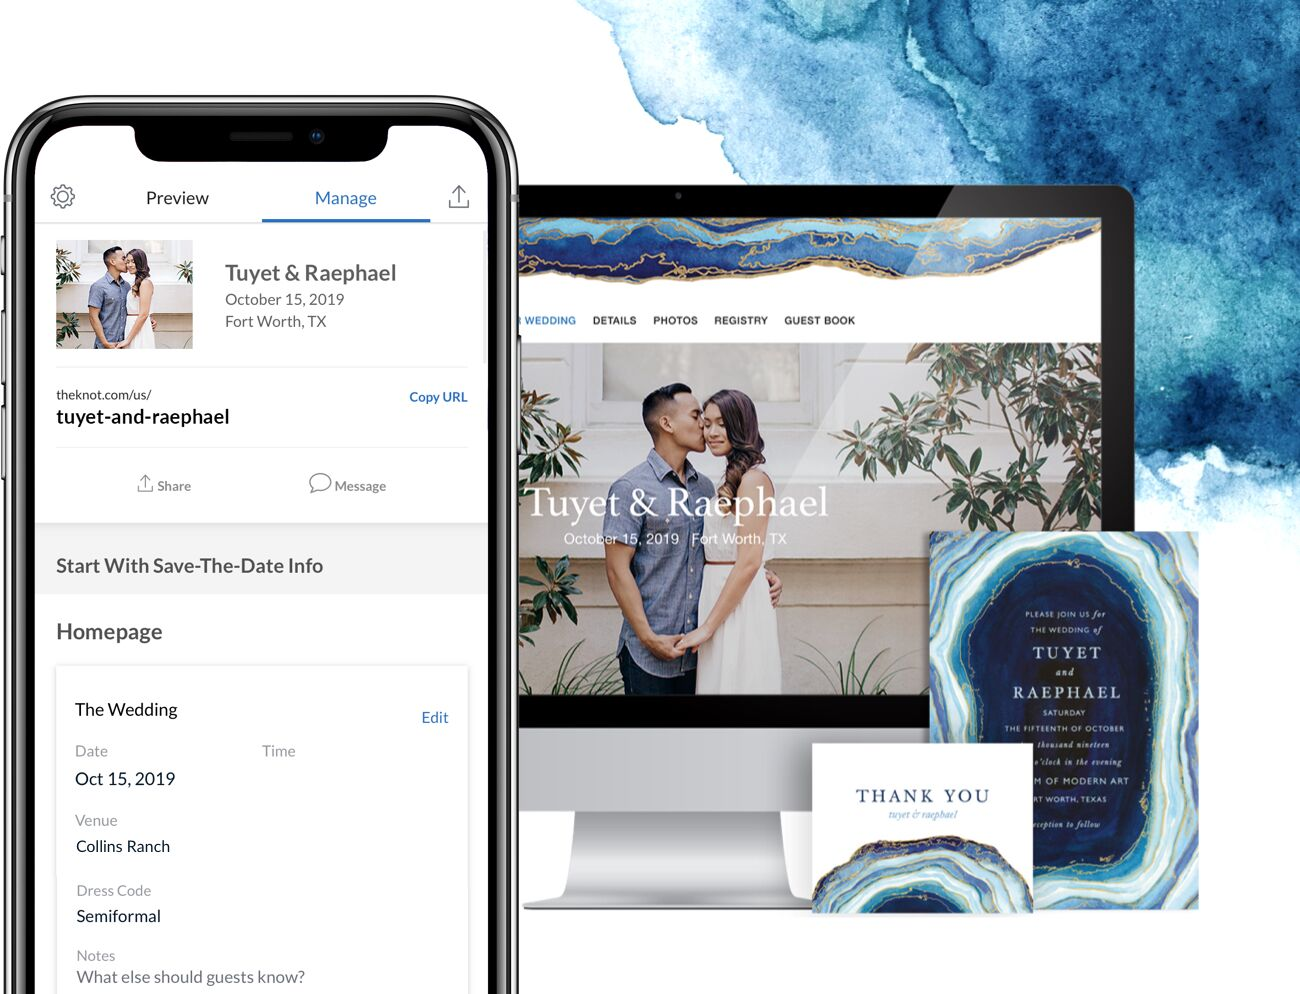 Create Your Wedding Website by The Knot App